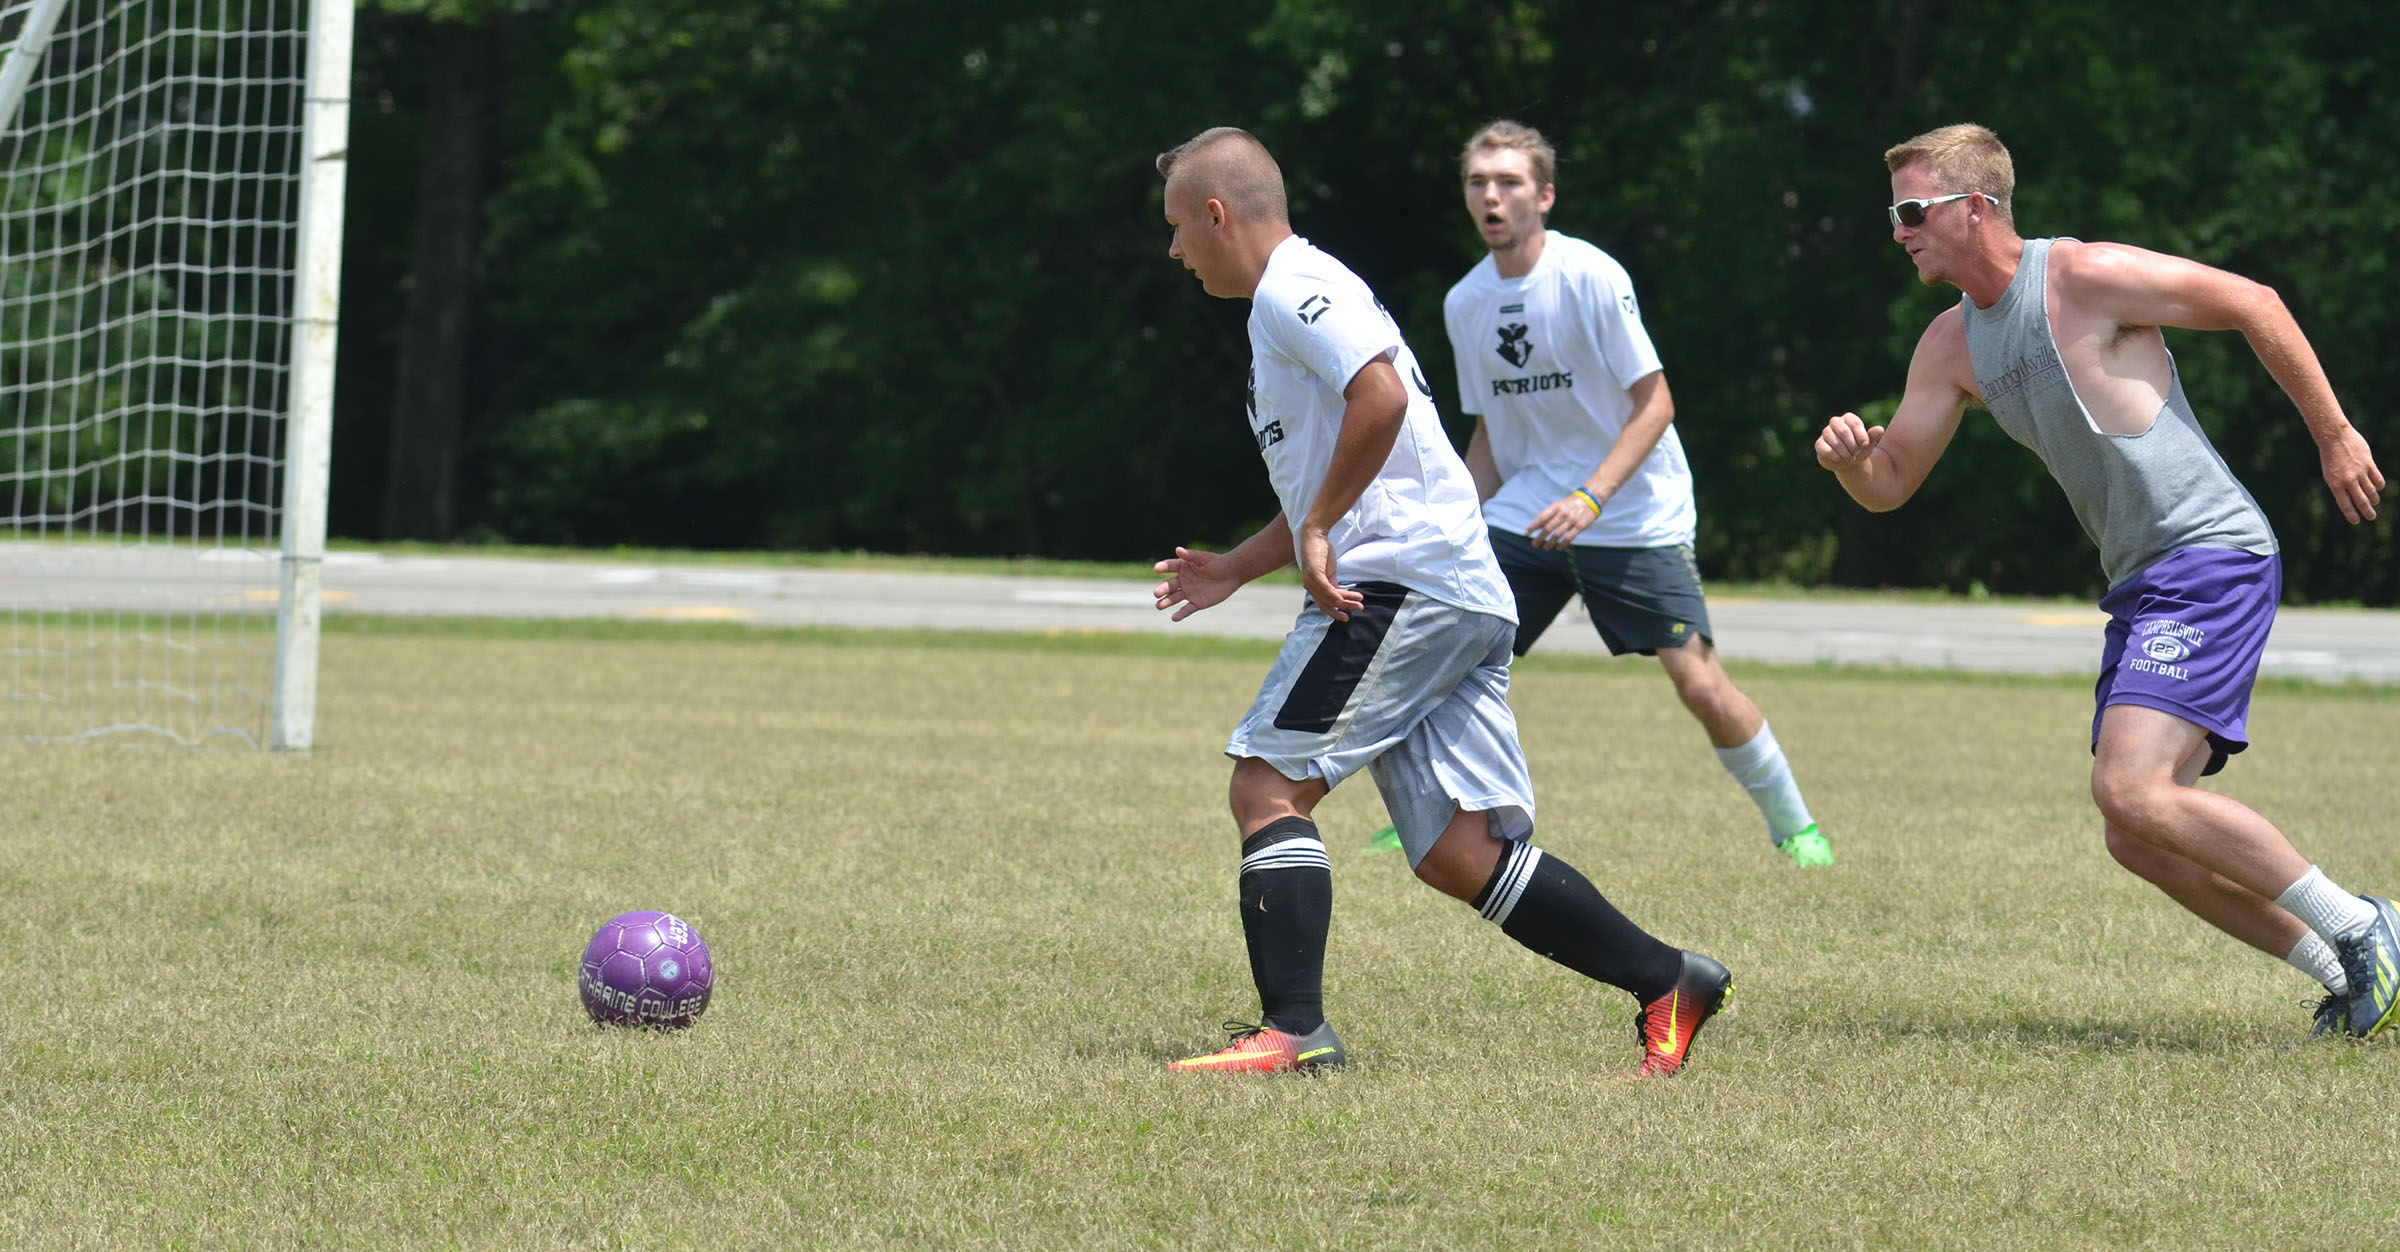 CHS senior Cody Davis kicks the ball toward the goal, with alumni player Logan Dial right behind him.